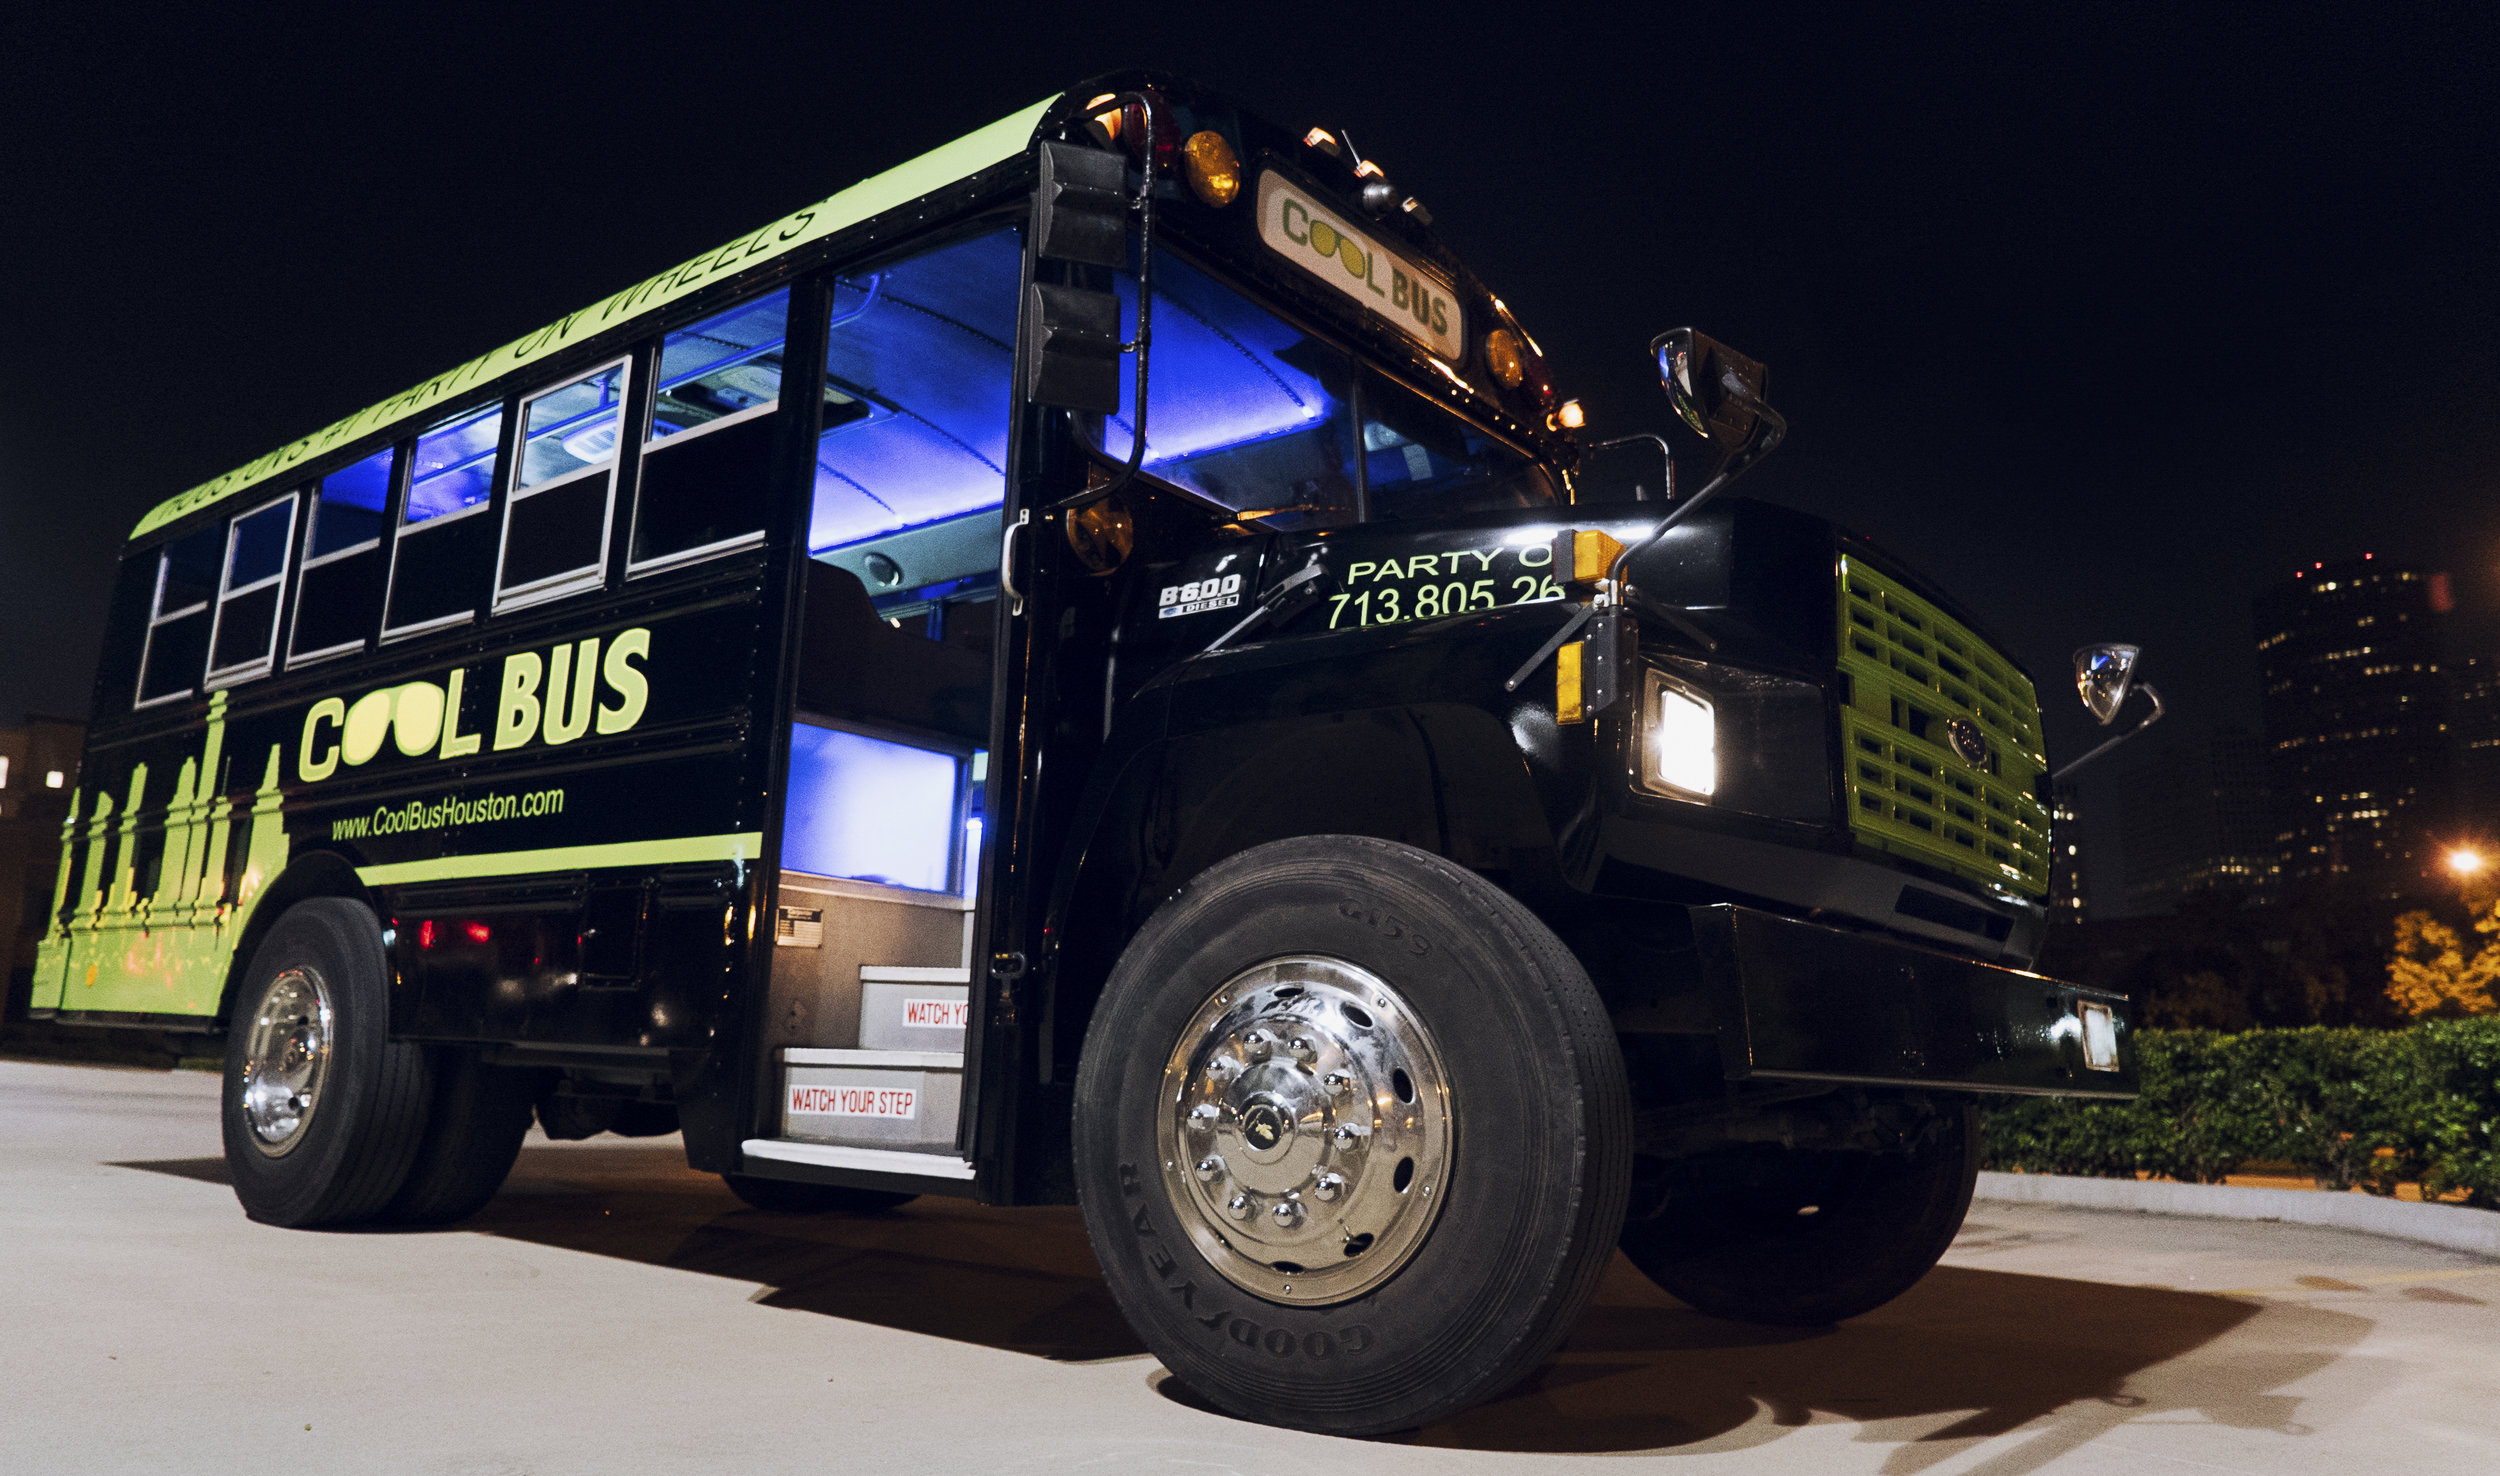 Cool Bus houston - party bus